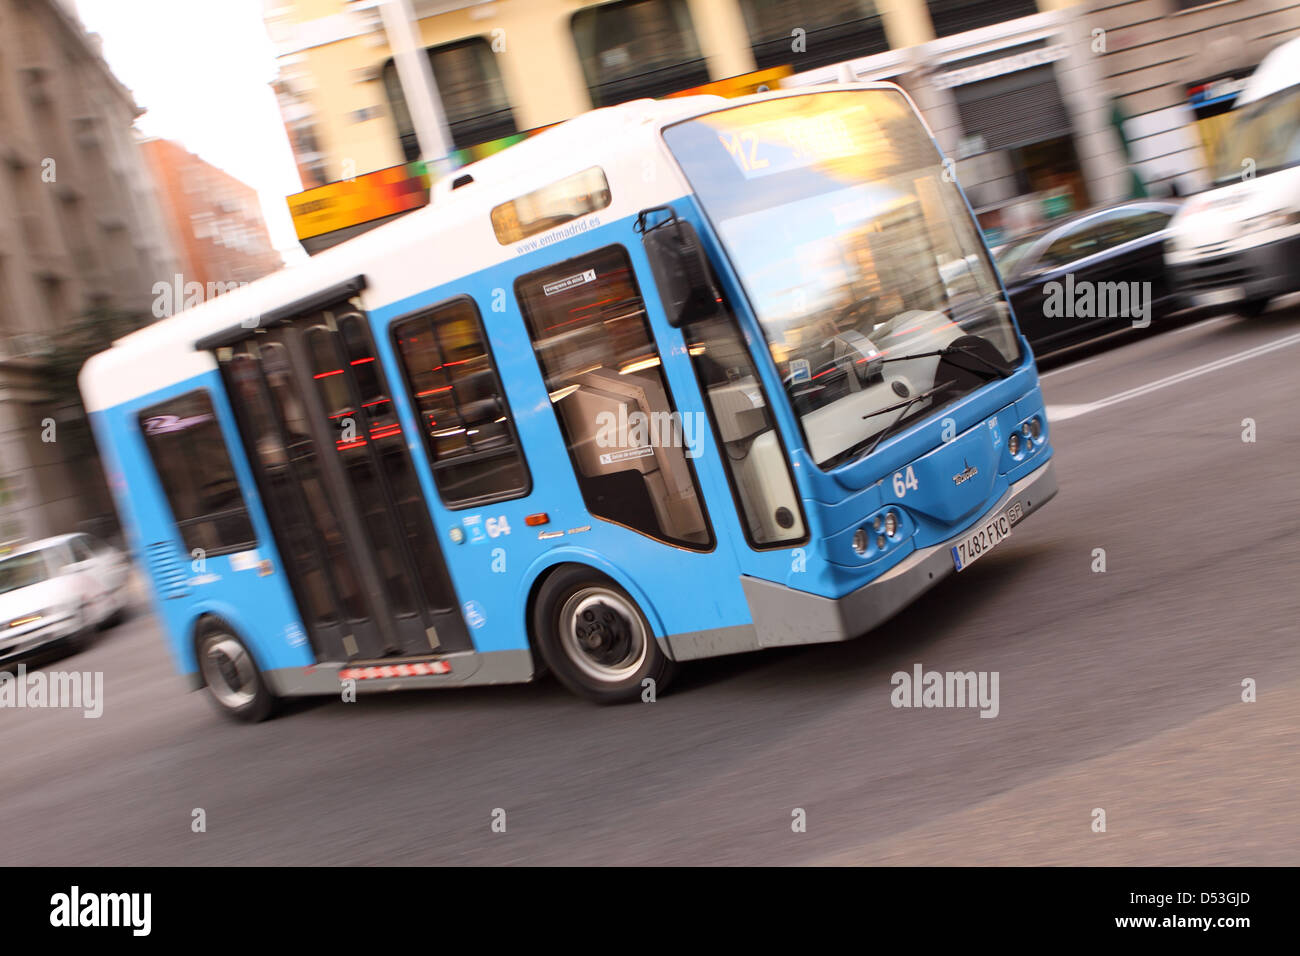 Madrid Spain EMT electric bus built by Tecnobus of Italy for use in the narrow city centre districts of Malasana - Stock Image